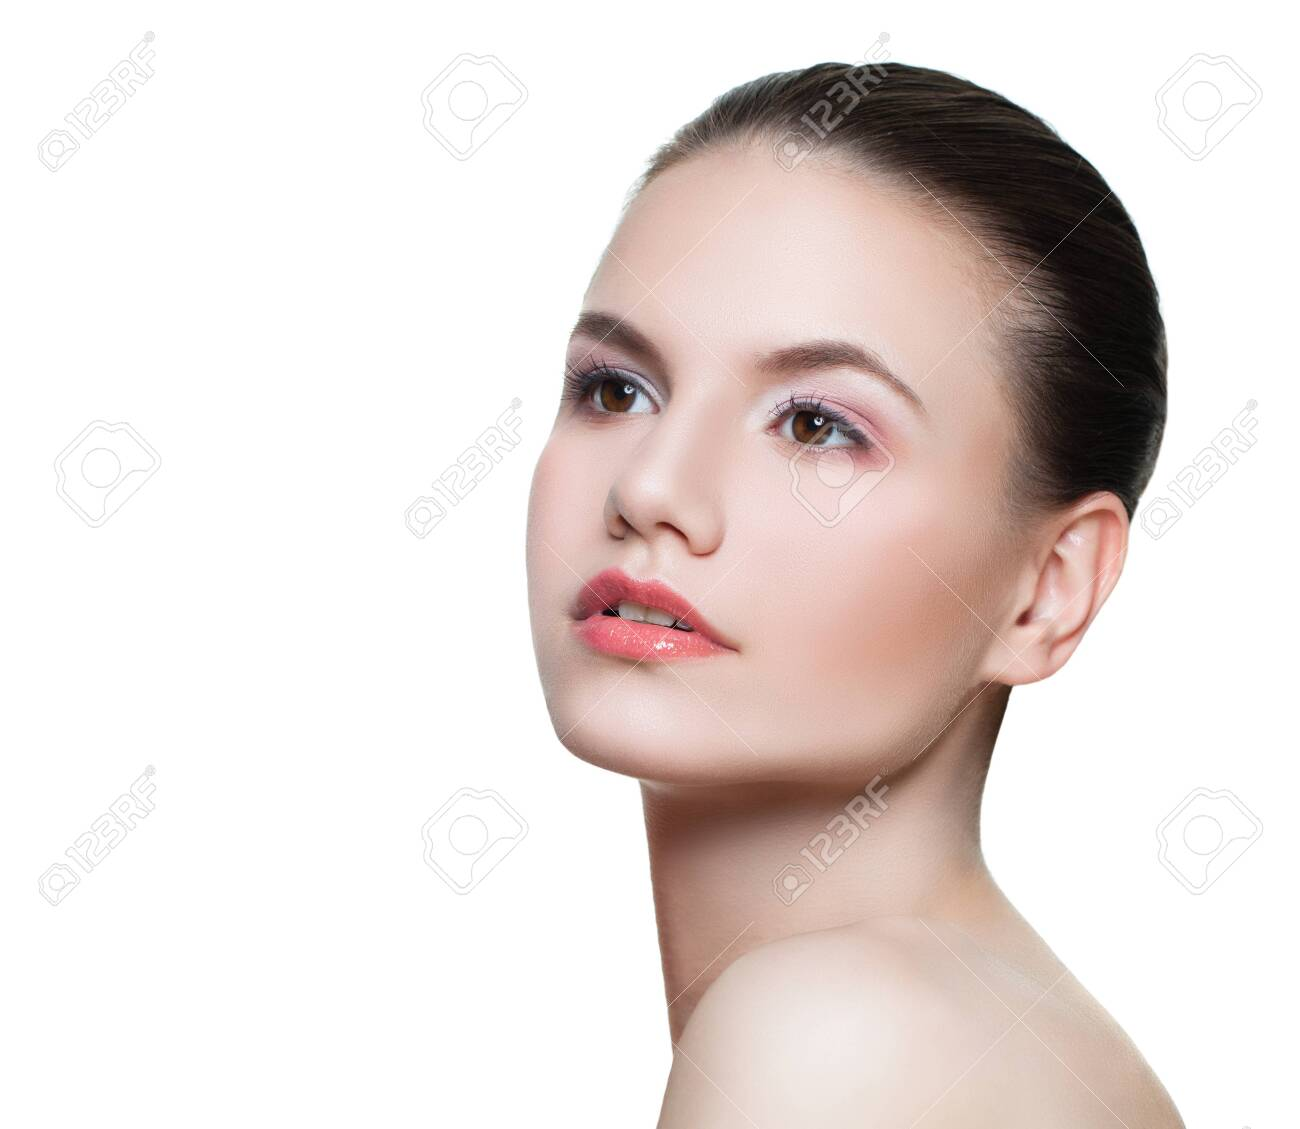 Portrait of perfect young woman spa model with clear skin isolated on white - 122475795